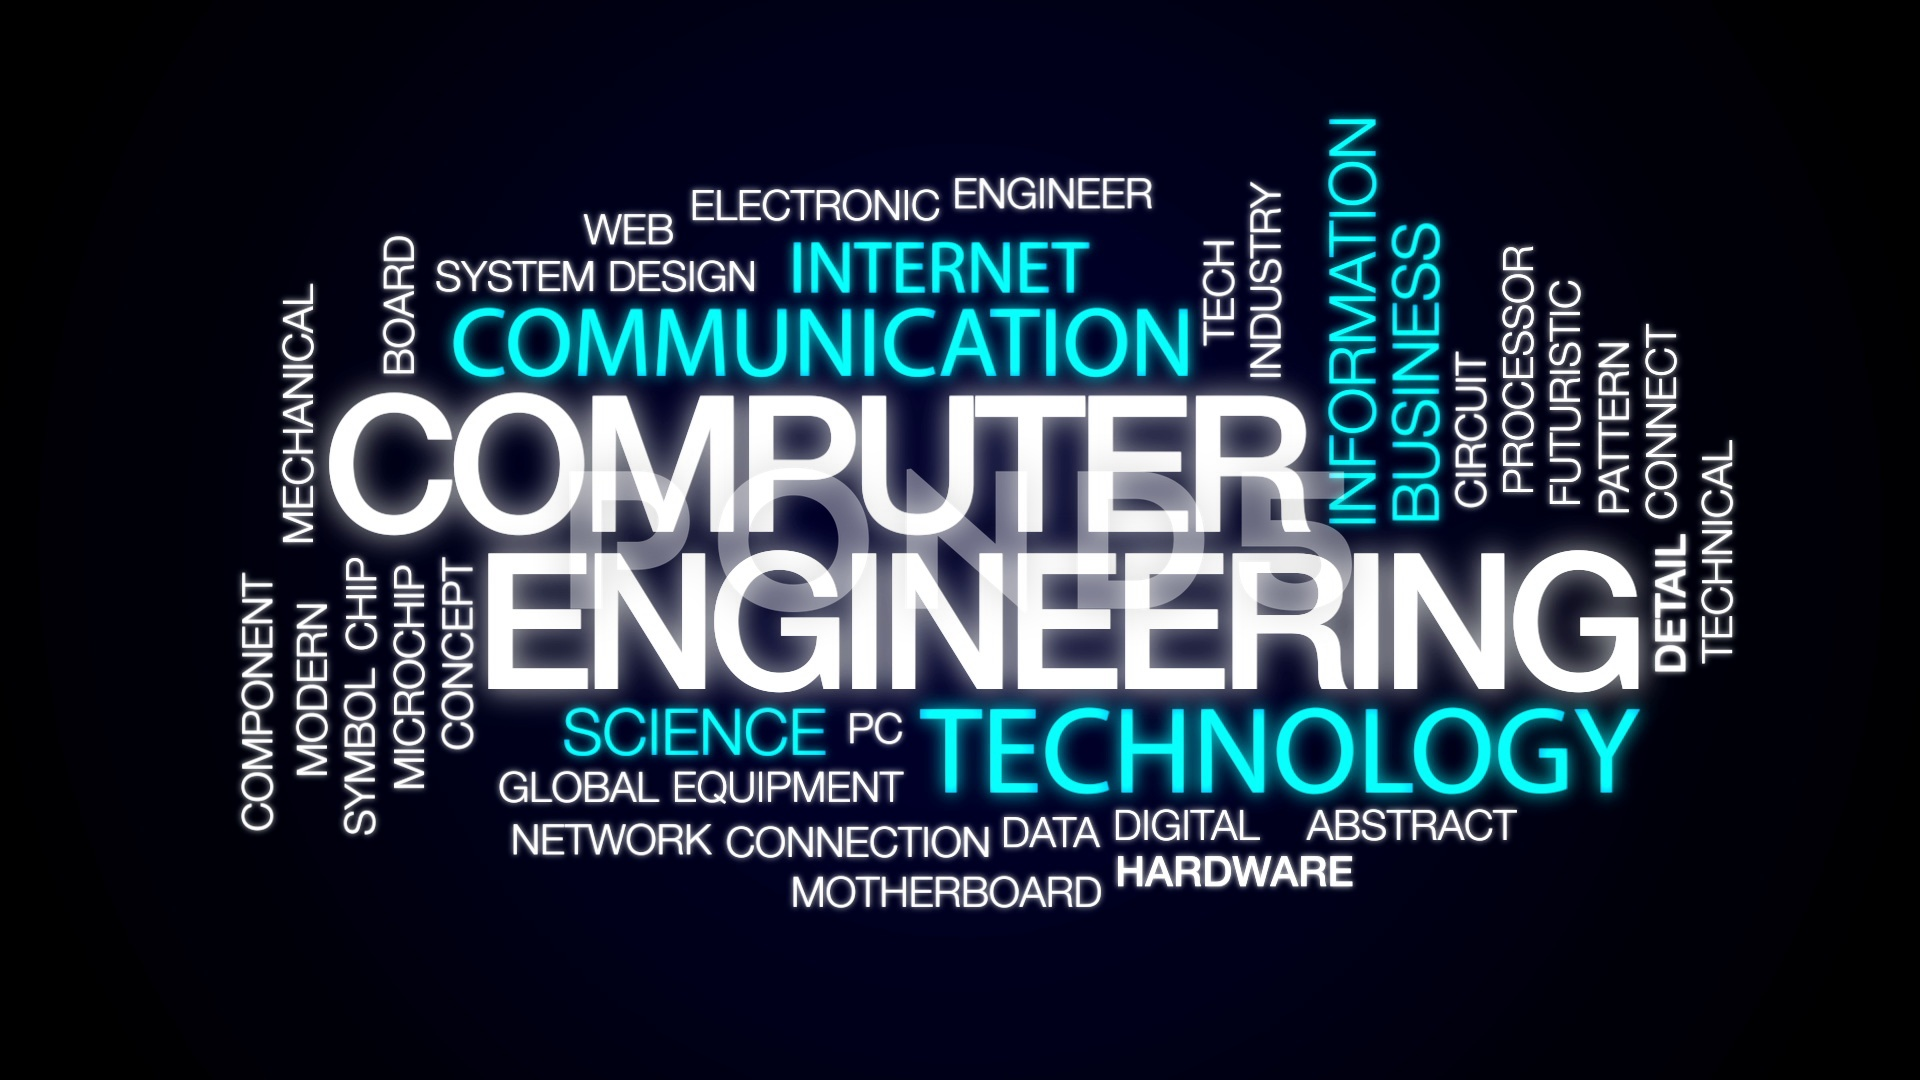 Computer Science Engineering Wallpapers Posted By Zoey Mercado